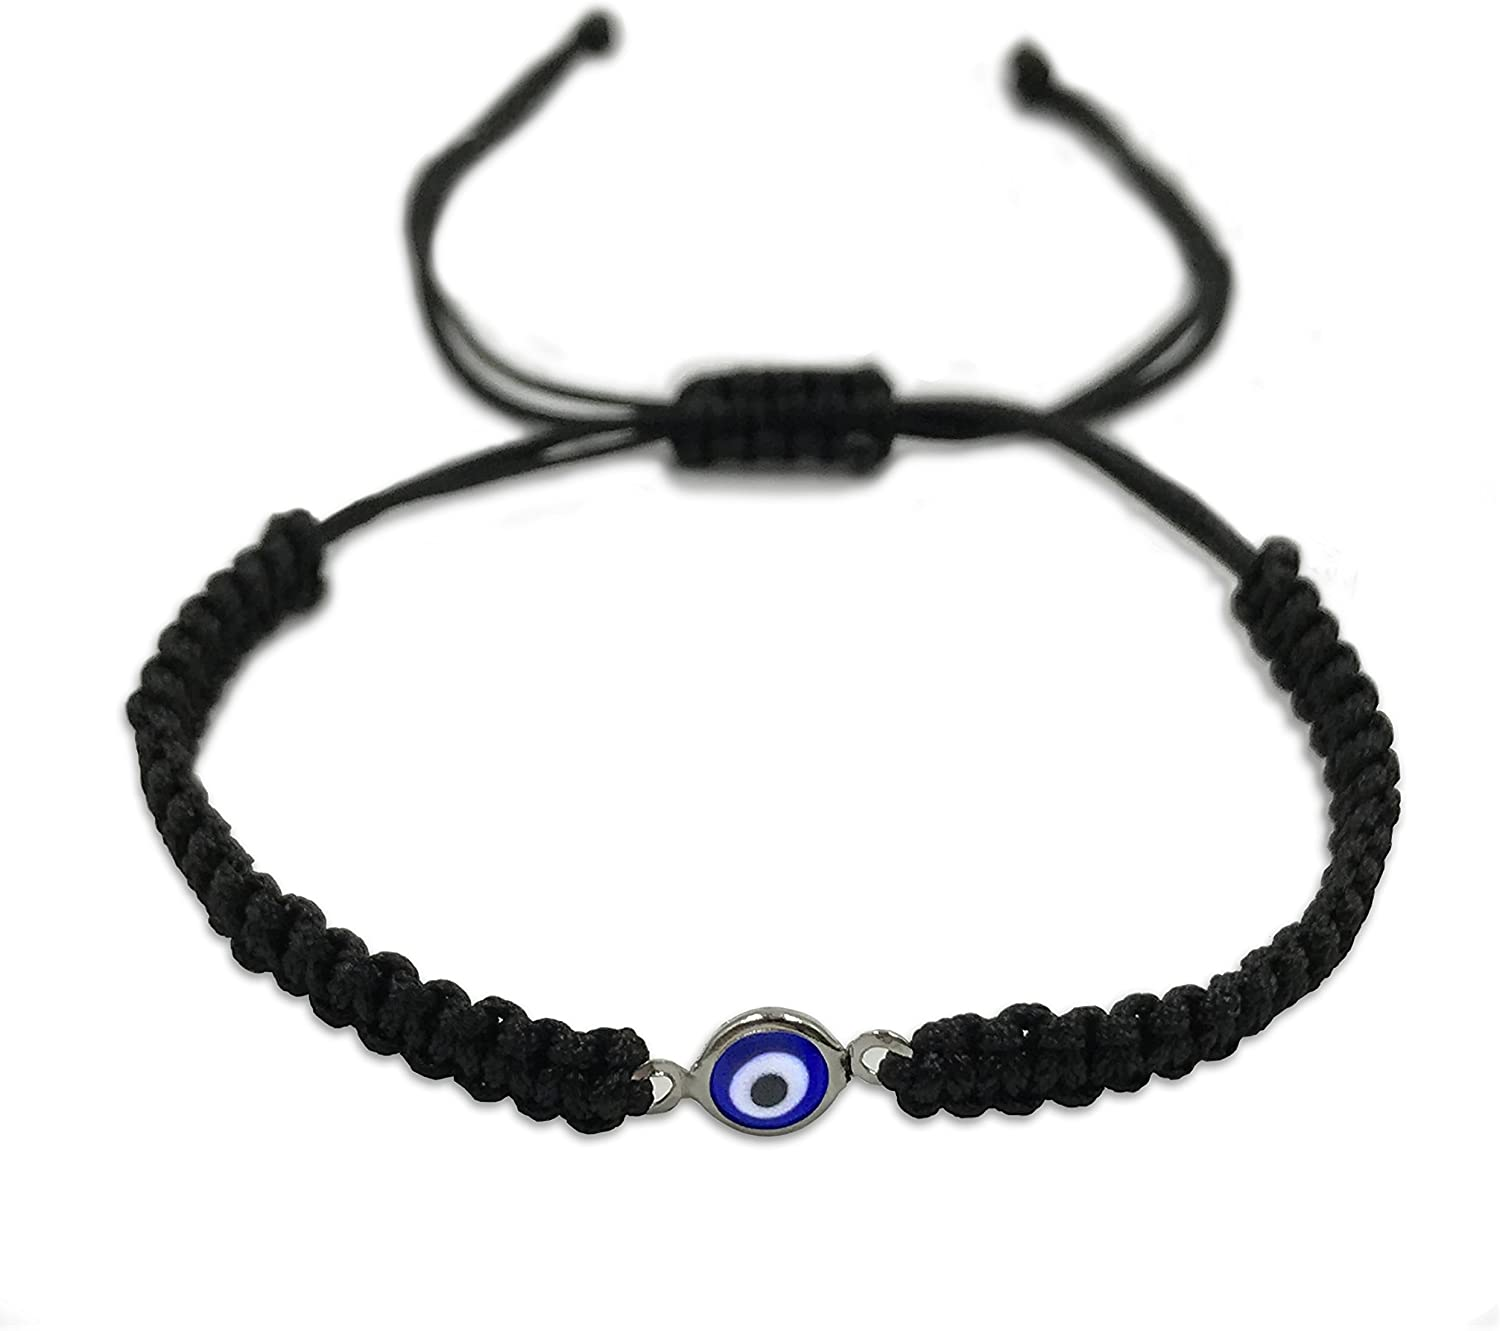 JIAOGE 2Pcs Evil Eye Bracelets Hand-Woven Adjustable Red Rope Cord Thread Braided Anklets Protection Lucky Best Wishes Bracelets for Women Men Girls